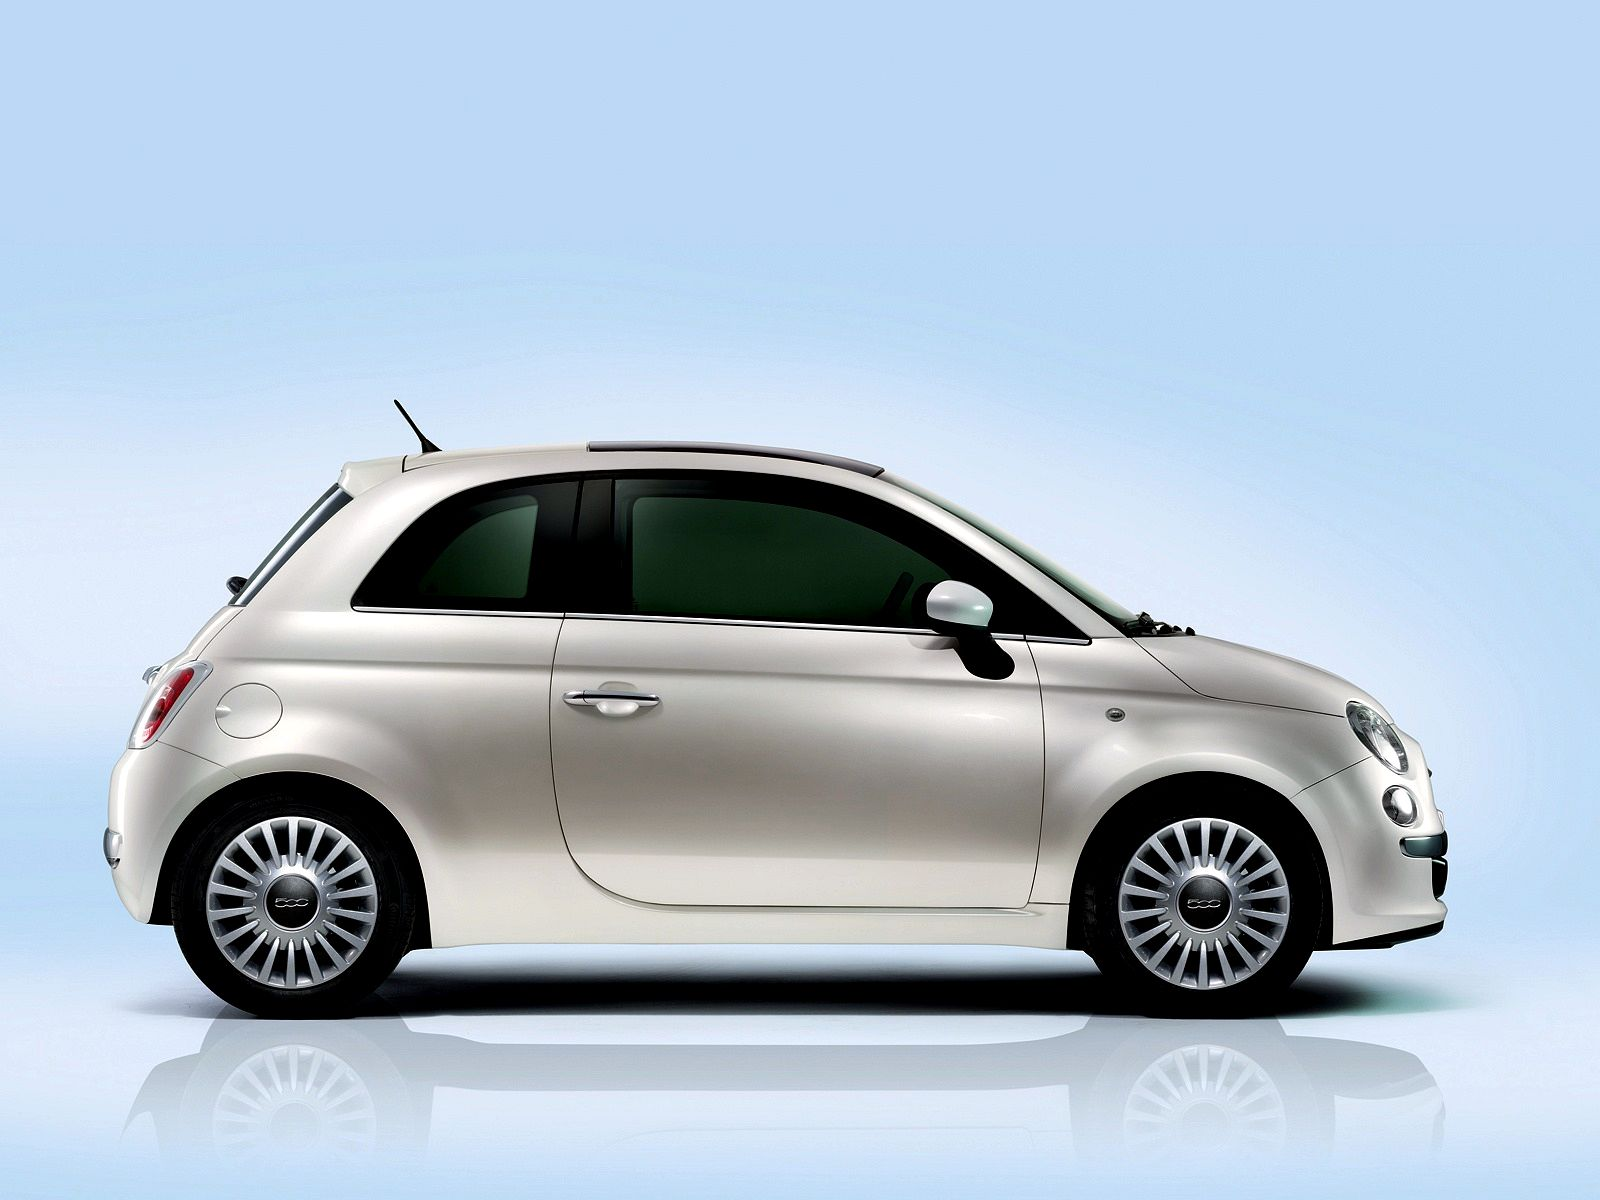 Awesome Pics Fiat 500 HQFX 25 Wallpapers 1600x1200